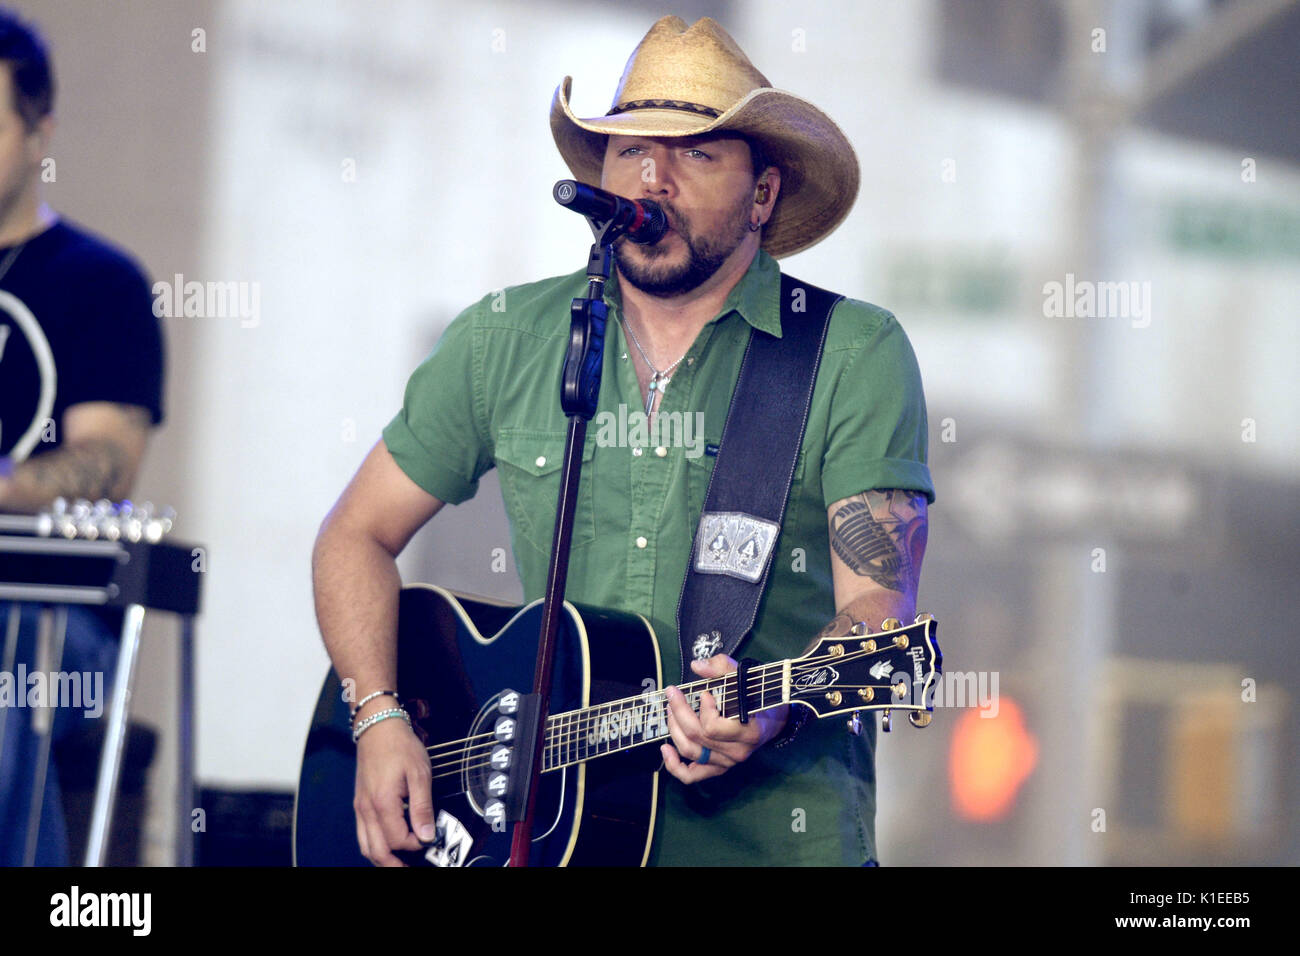 06b5305e67378 Jason Aldean performs live on stage at  NBC Today Show Citi Concert Series   at Rockefeller Plaza on August 25